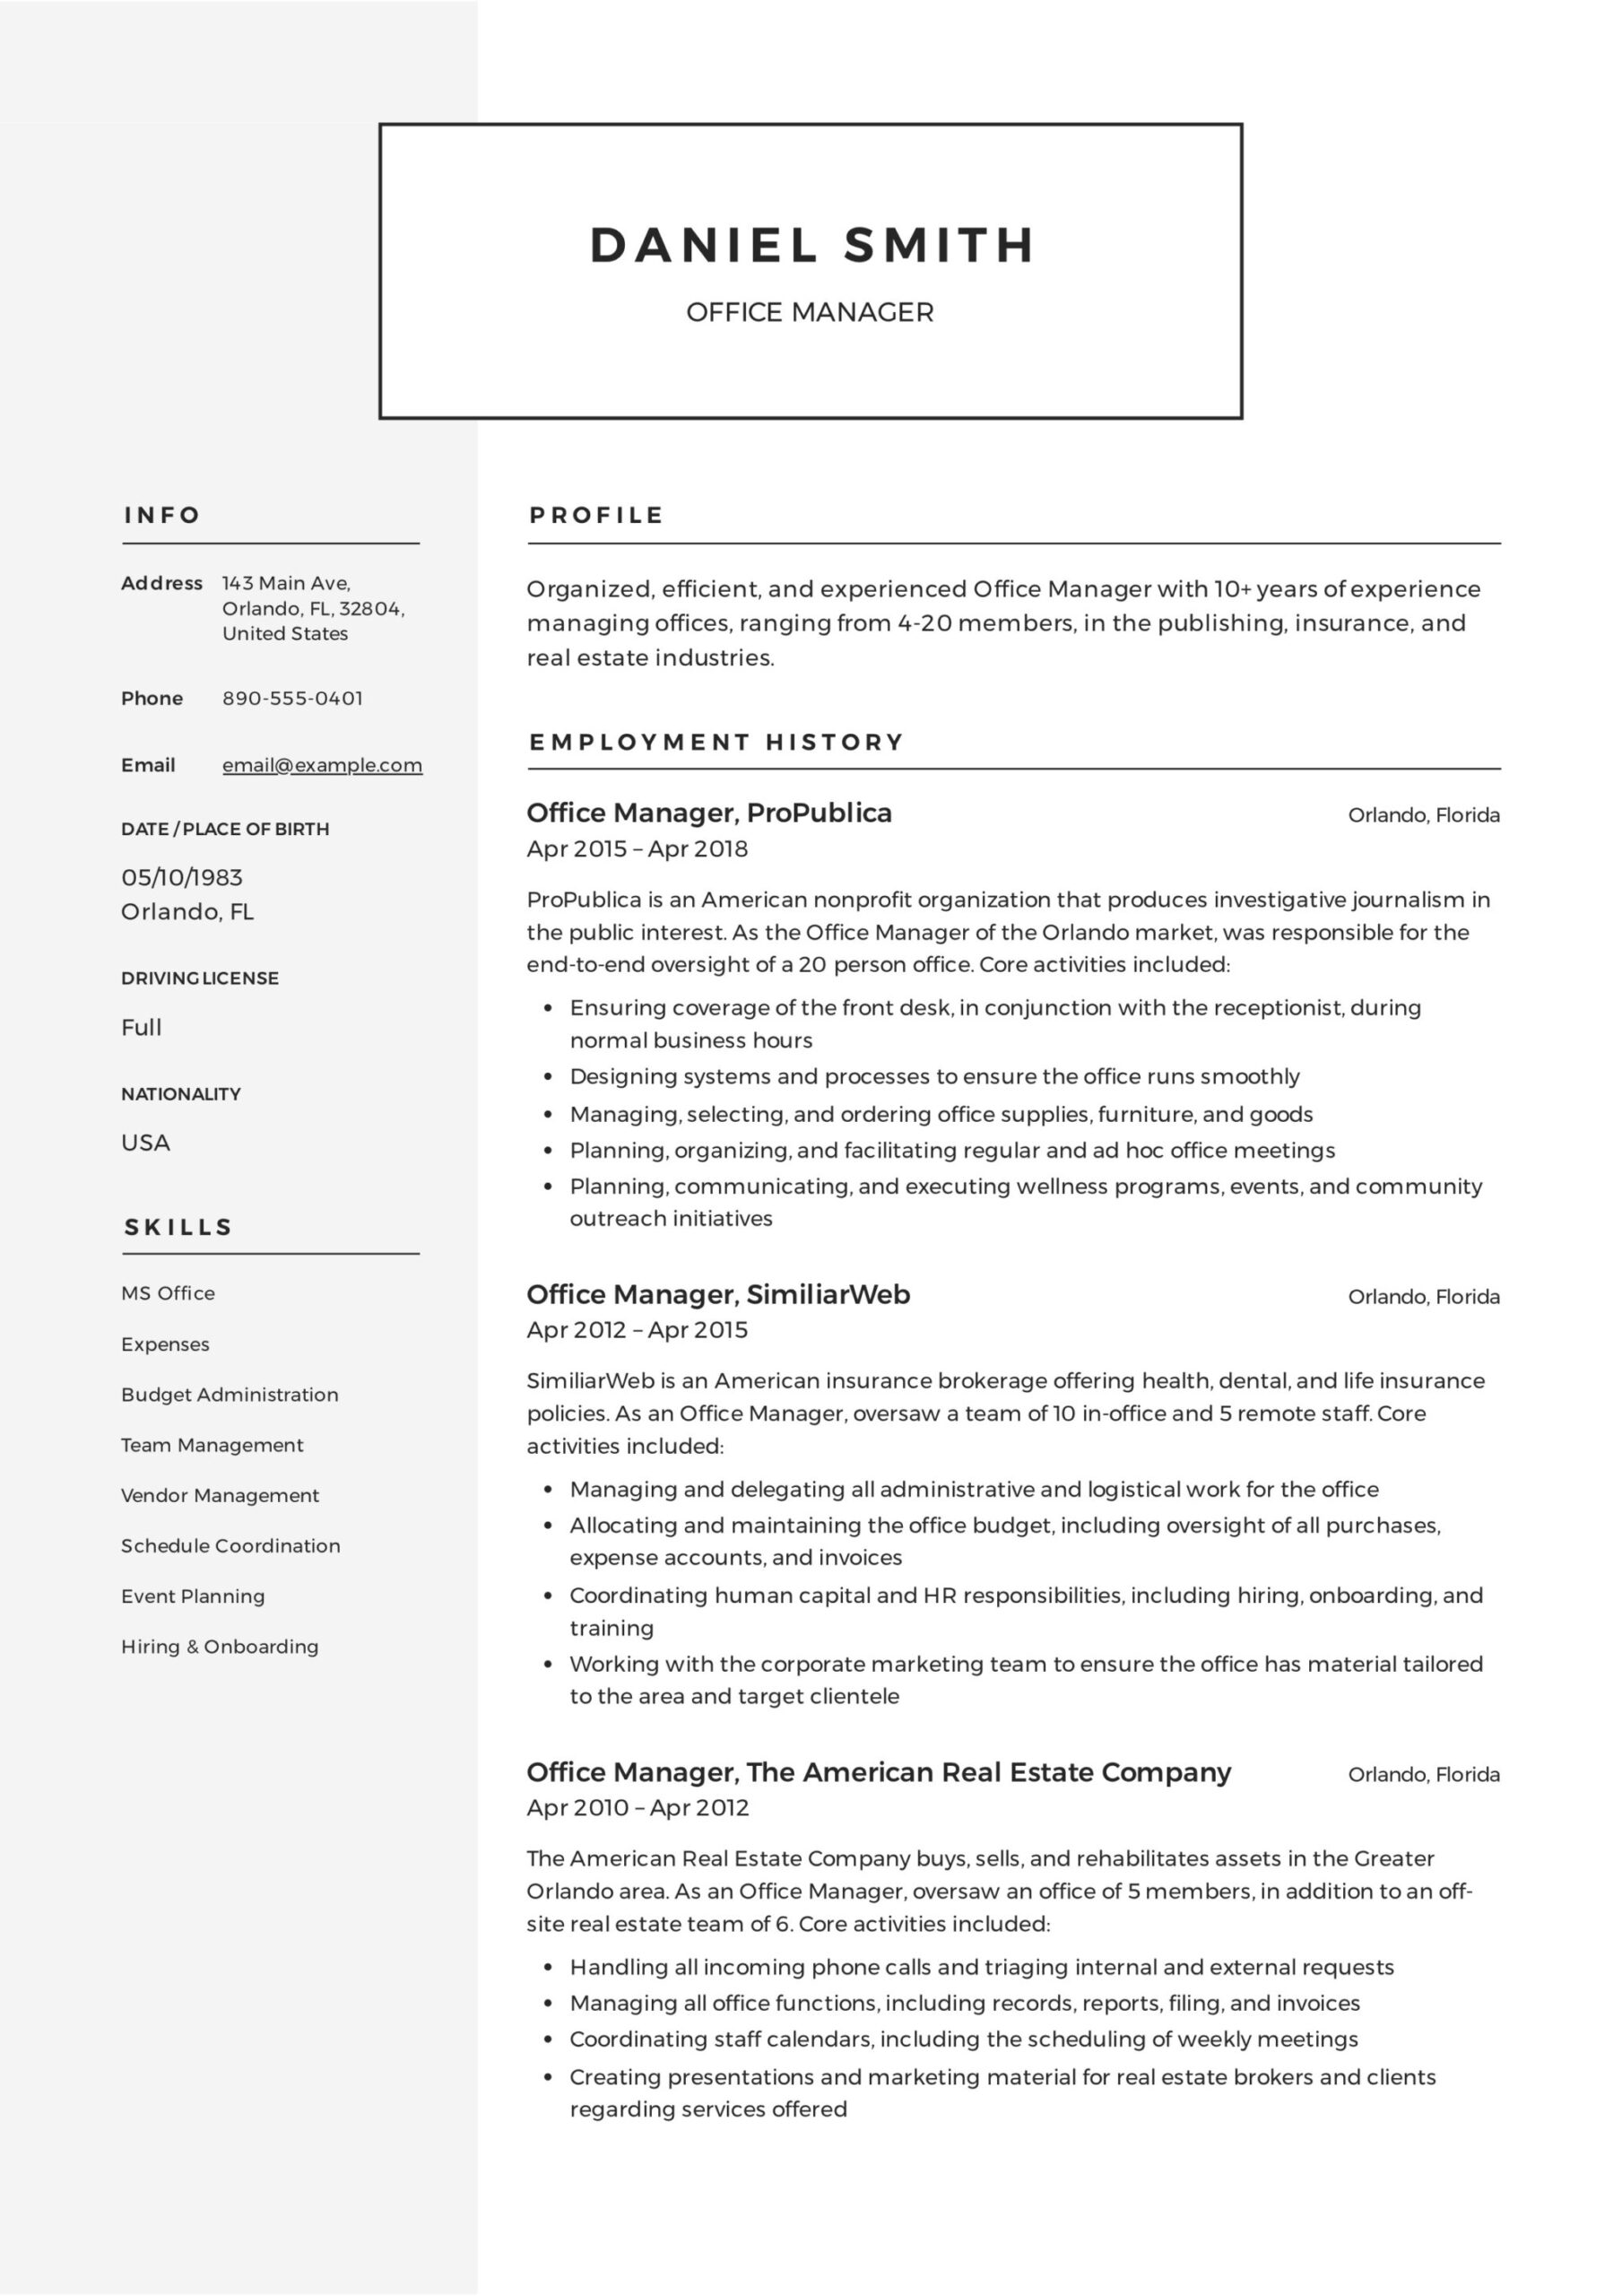 office manager resume guide samples pdf best sample job education examples reporter Resume Best Office Manager Resume